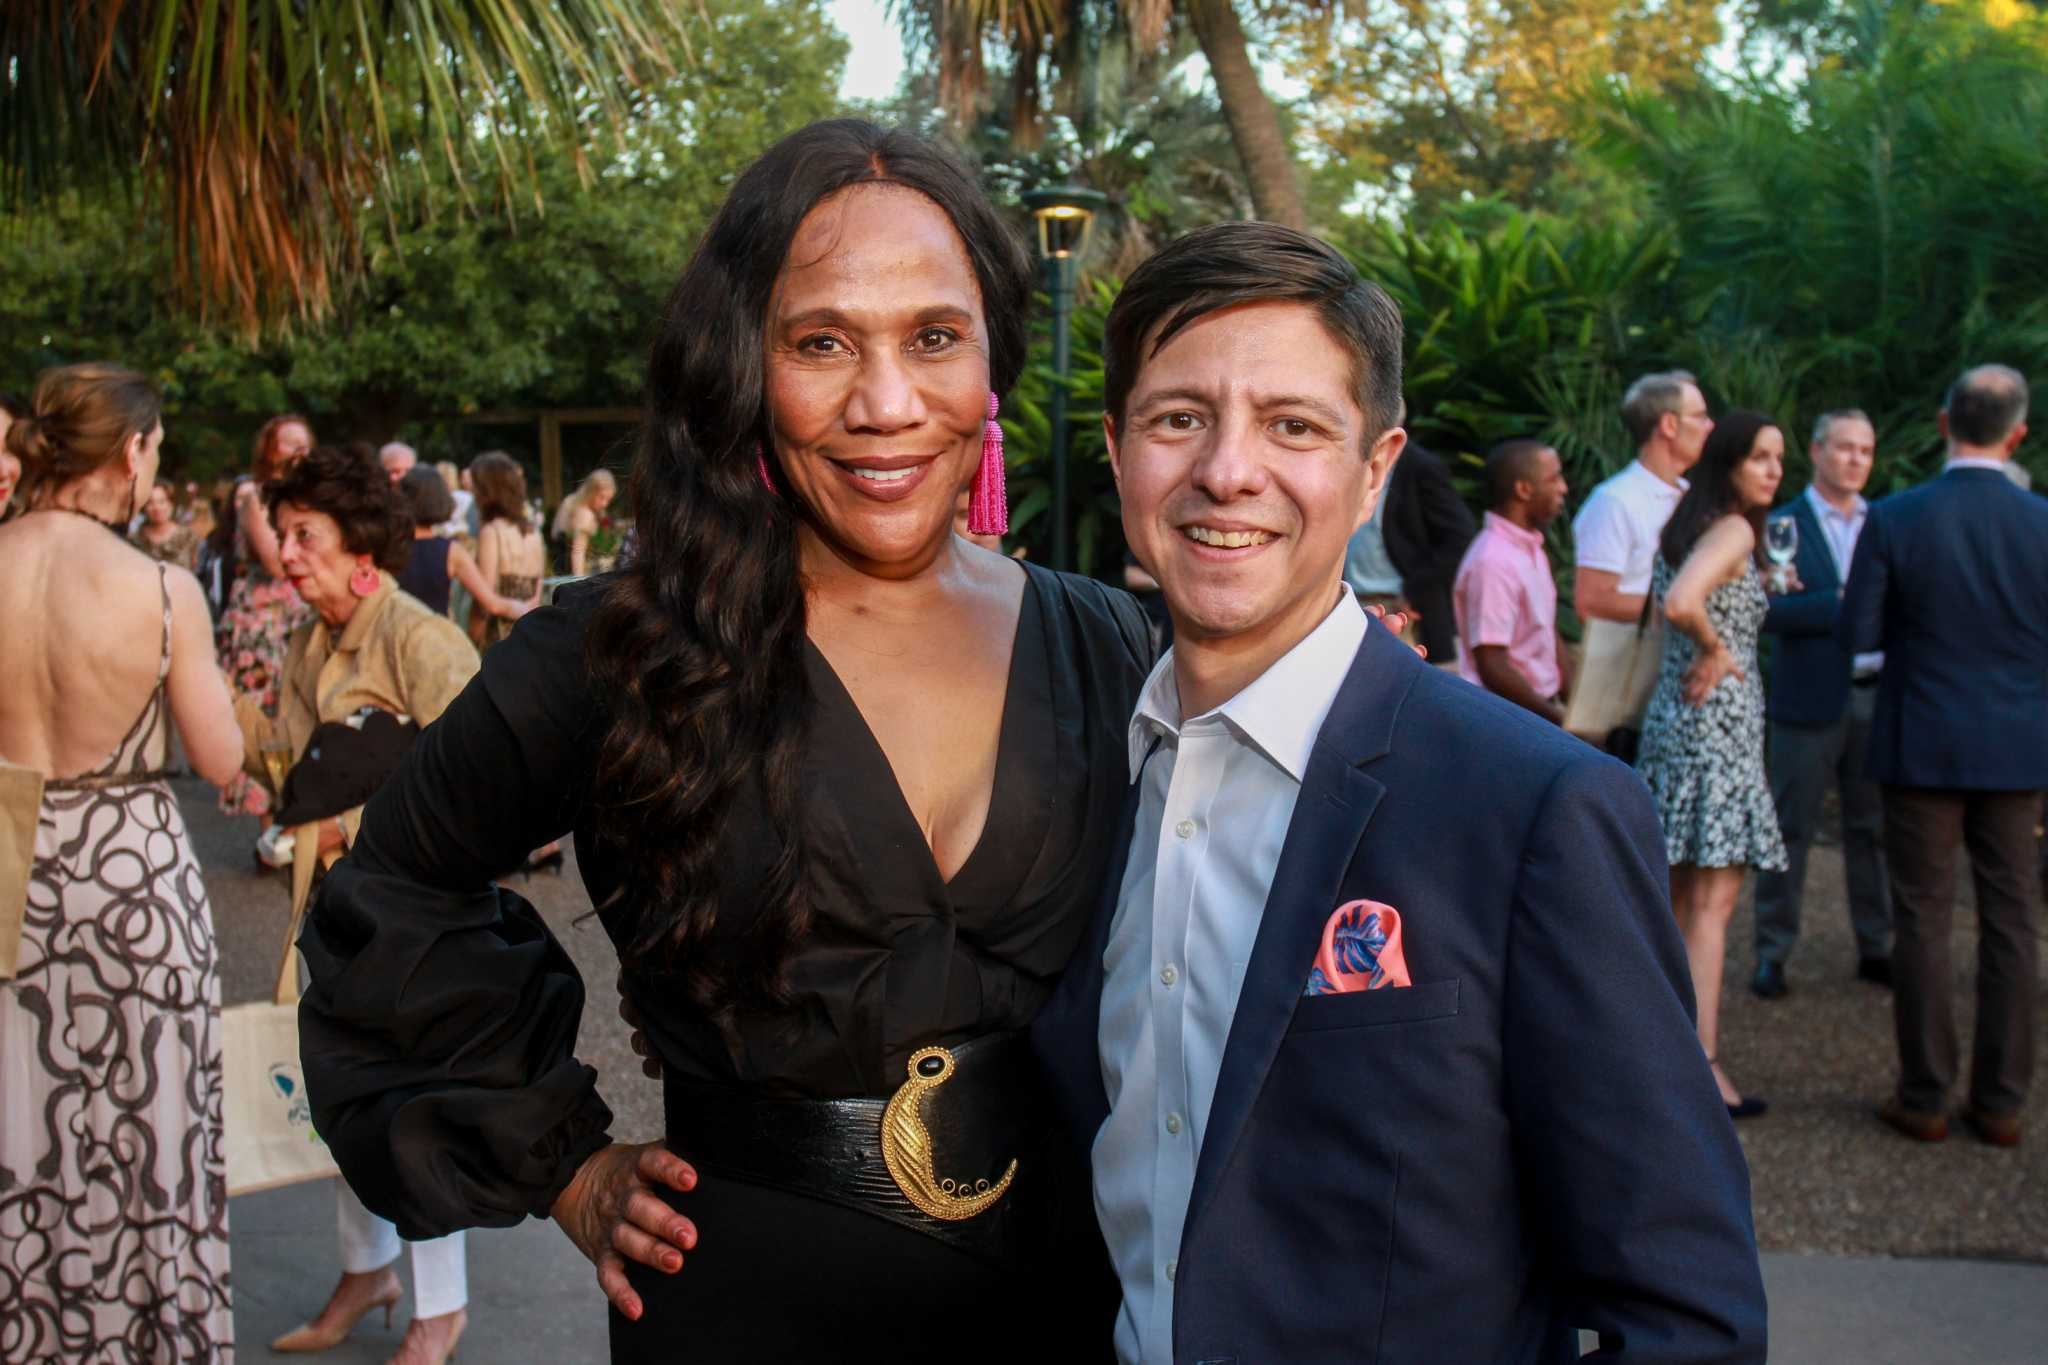 Houston Zoo celebrates South America's wetland, the Astros and $715,000 raised at conservation gala